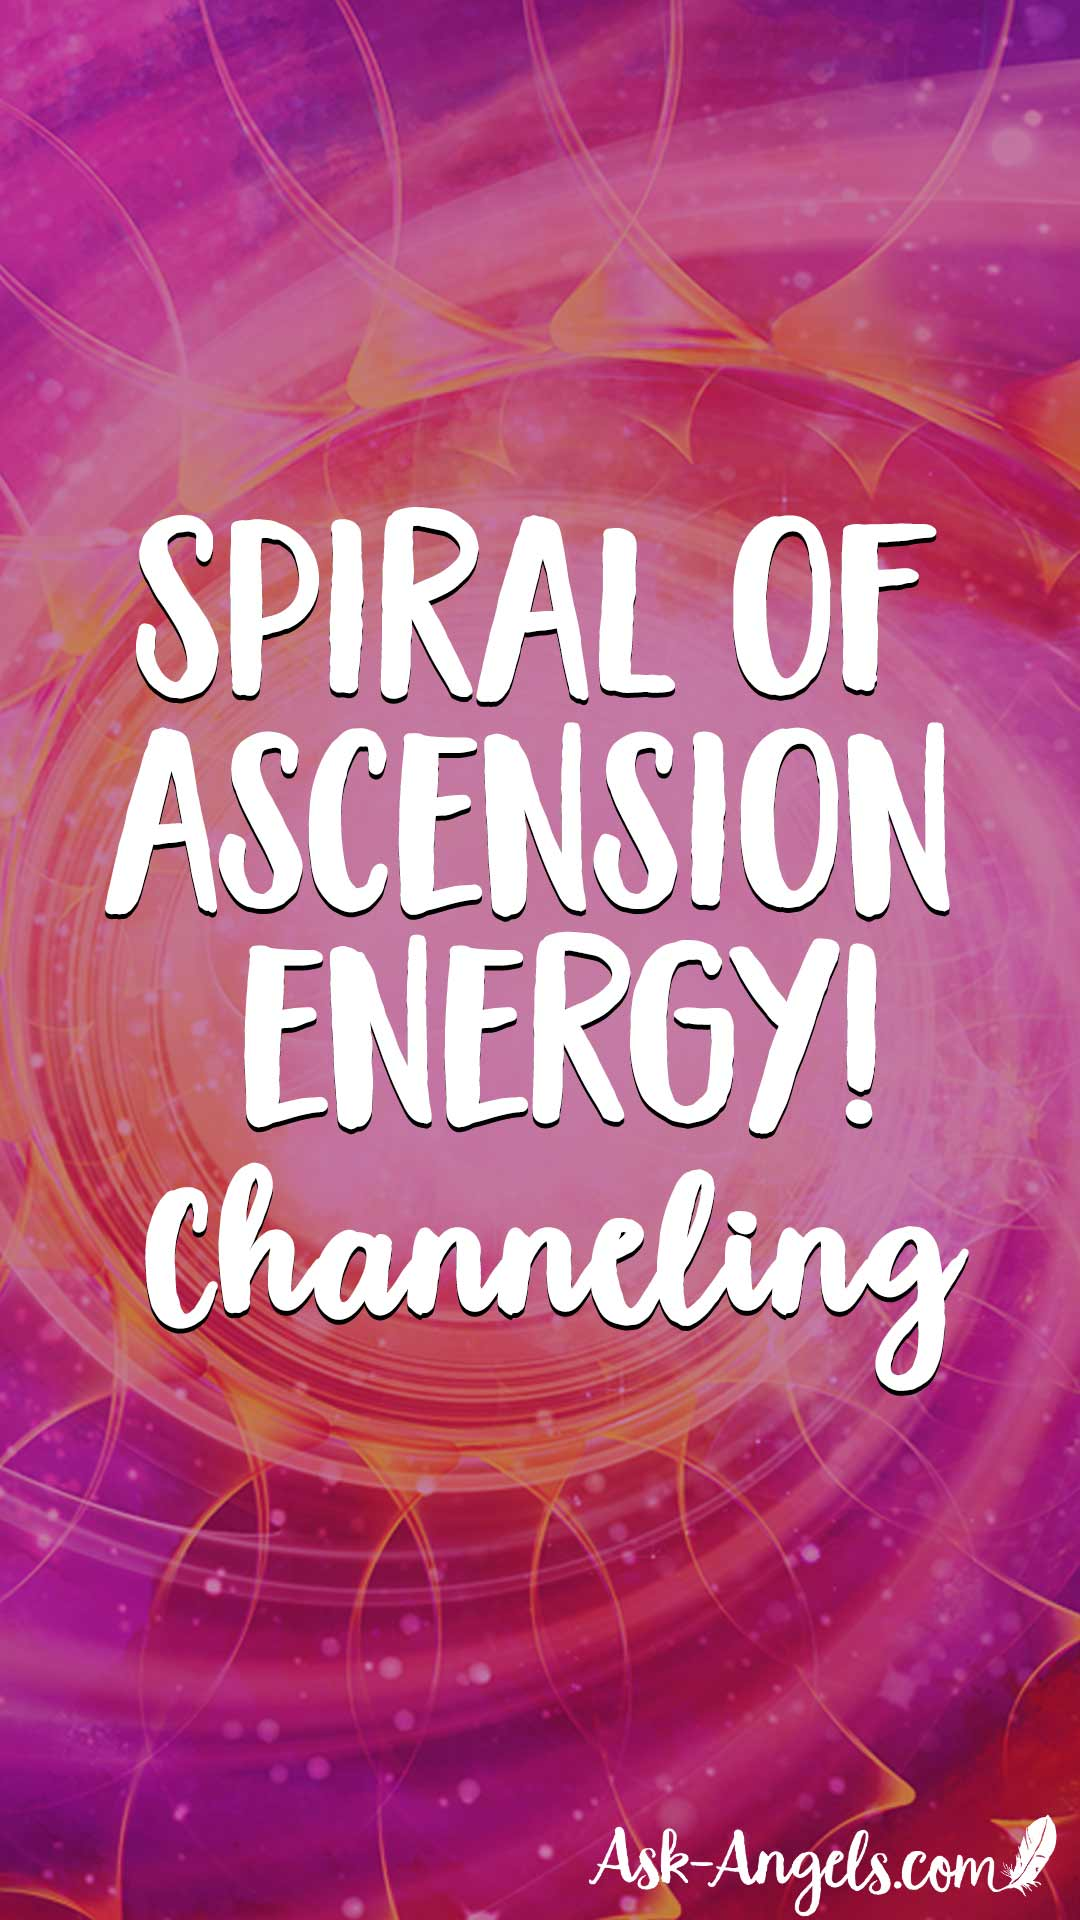 The Event - Spiral of Ascension Energy channeling with the Ascension Council of Light by Melanie Beckler